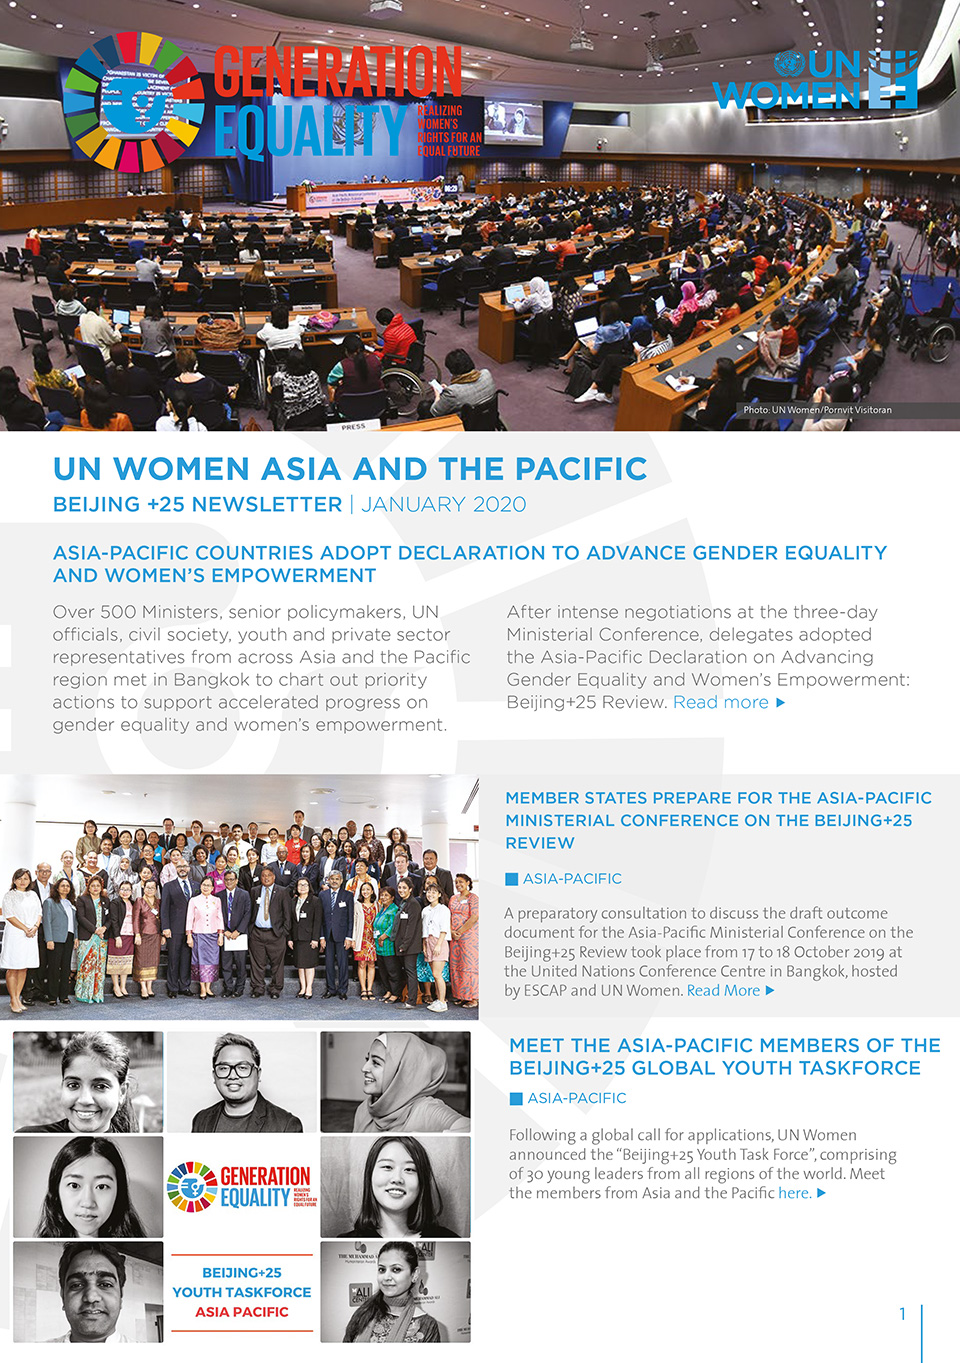 UN Women asia and the Pacific Beijing +25 Newsletter | JANUARY 2020